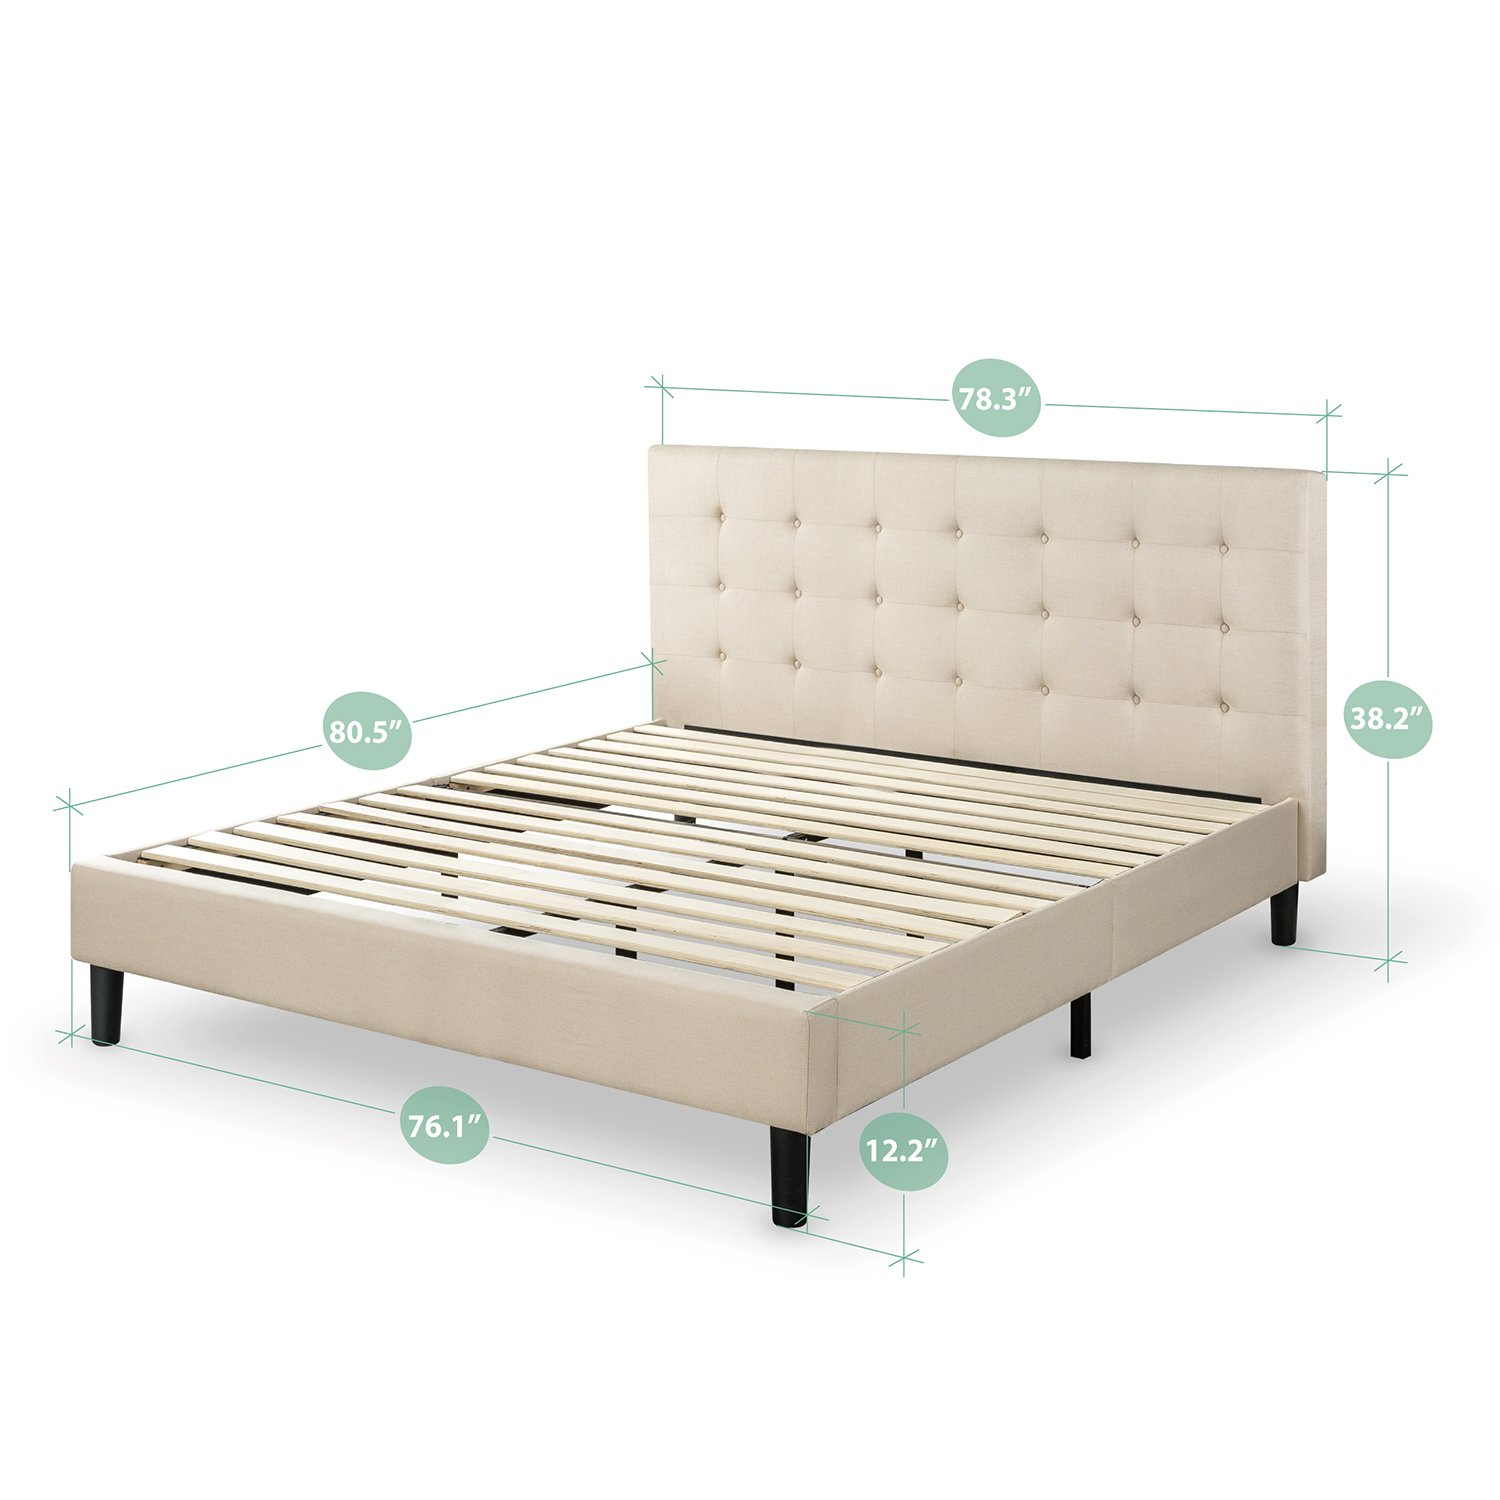 Amazon.com - Zinus Upholstered Button Tufted Platform Bed with Wooden  Slats, King -